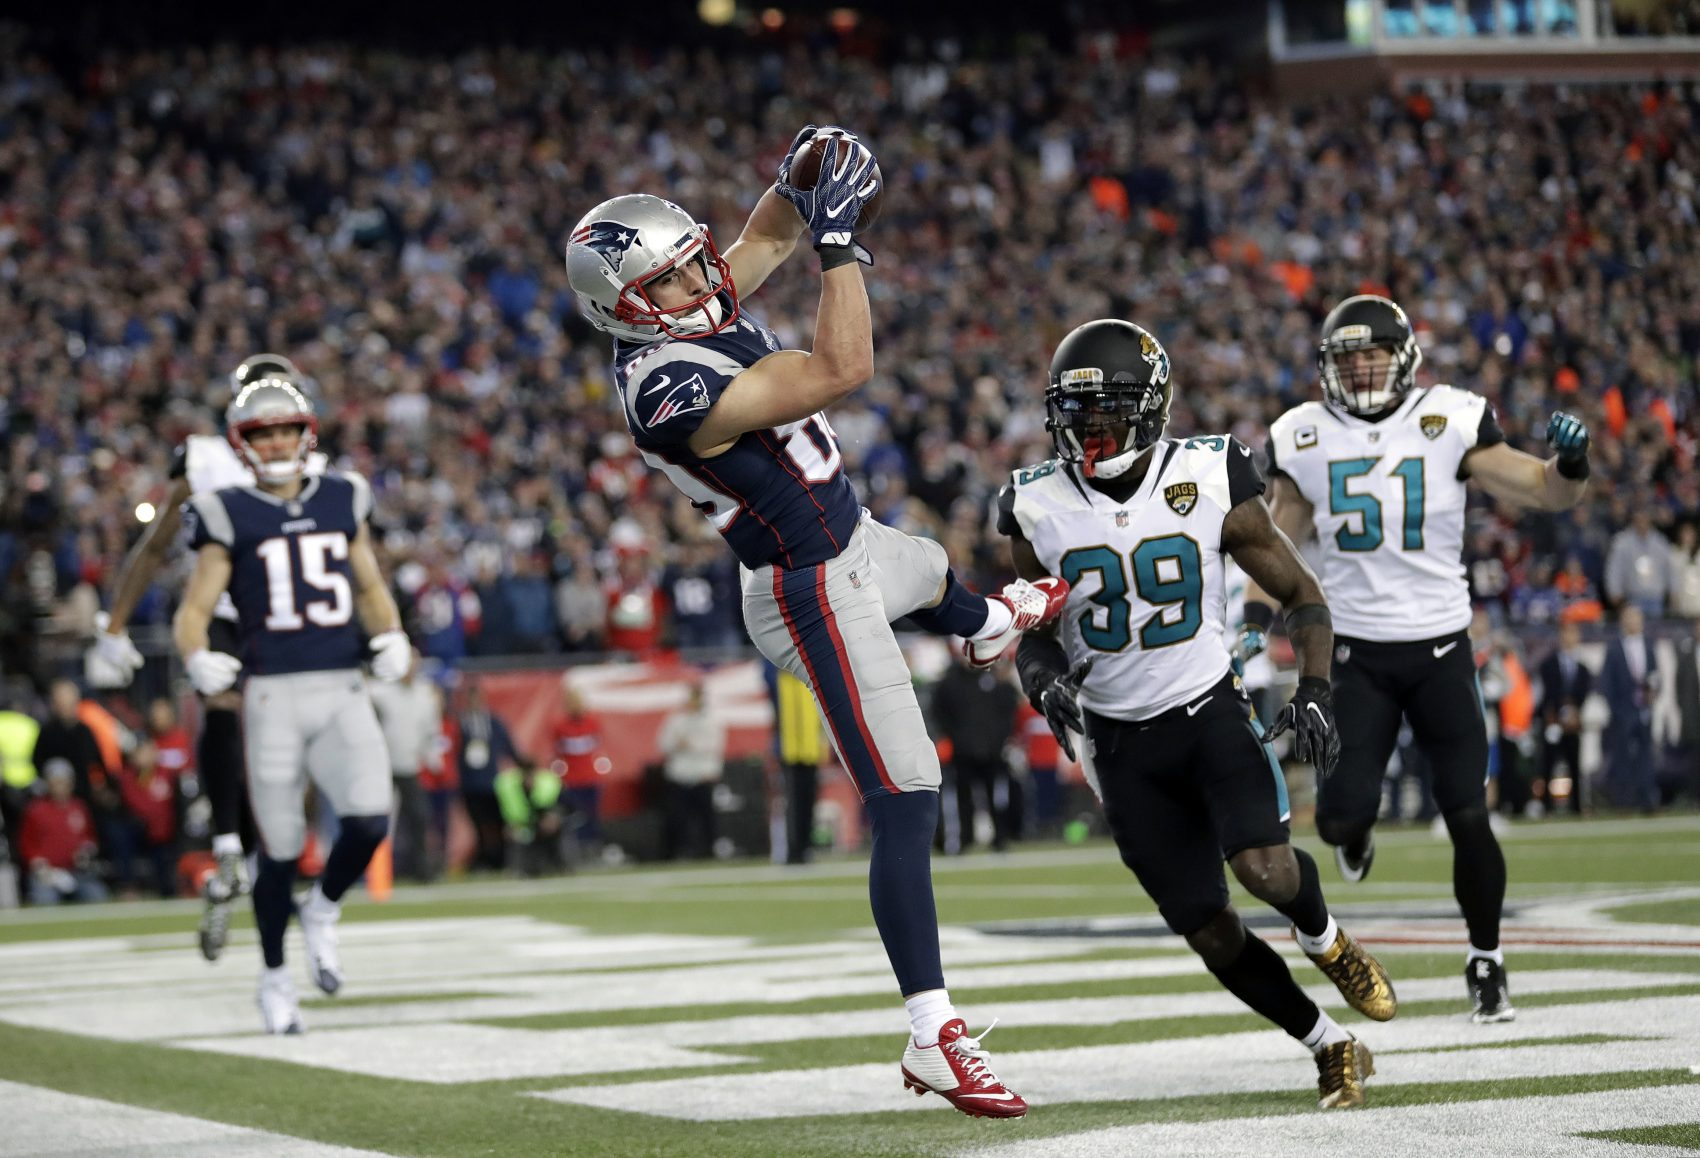 New England Patriots wide receiver Danny Amendola (80) catches a touchdown pass in front of Jacksonville Jaguars safety Tashaun Gipson (39) and linebacker Paul Posluszny (51) during the second half of the AFC championship NFL football game, Sunday, Jan. 21, 2018, in Foxborough, Mass. (AP Photo/David J. Phillip)